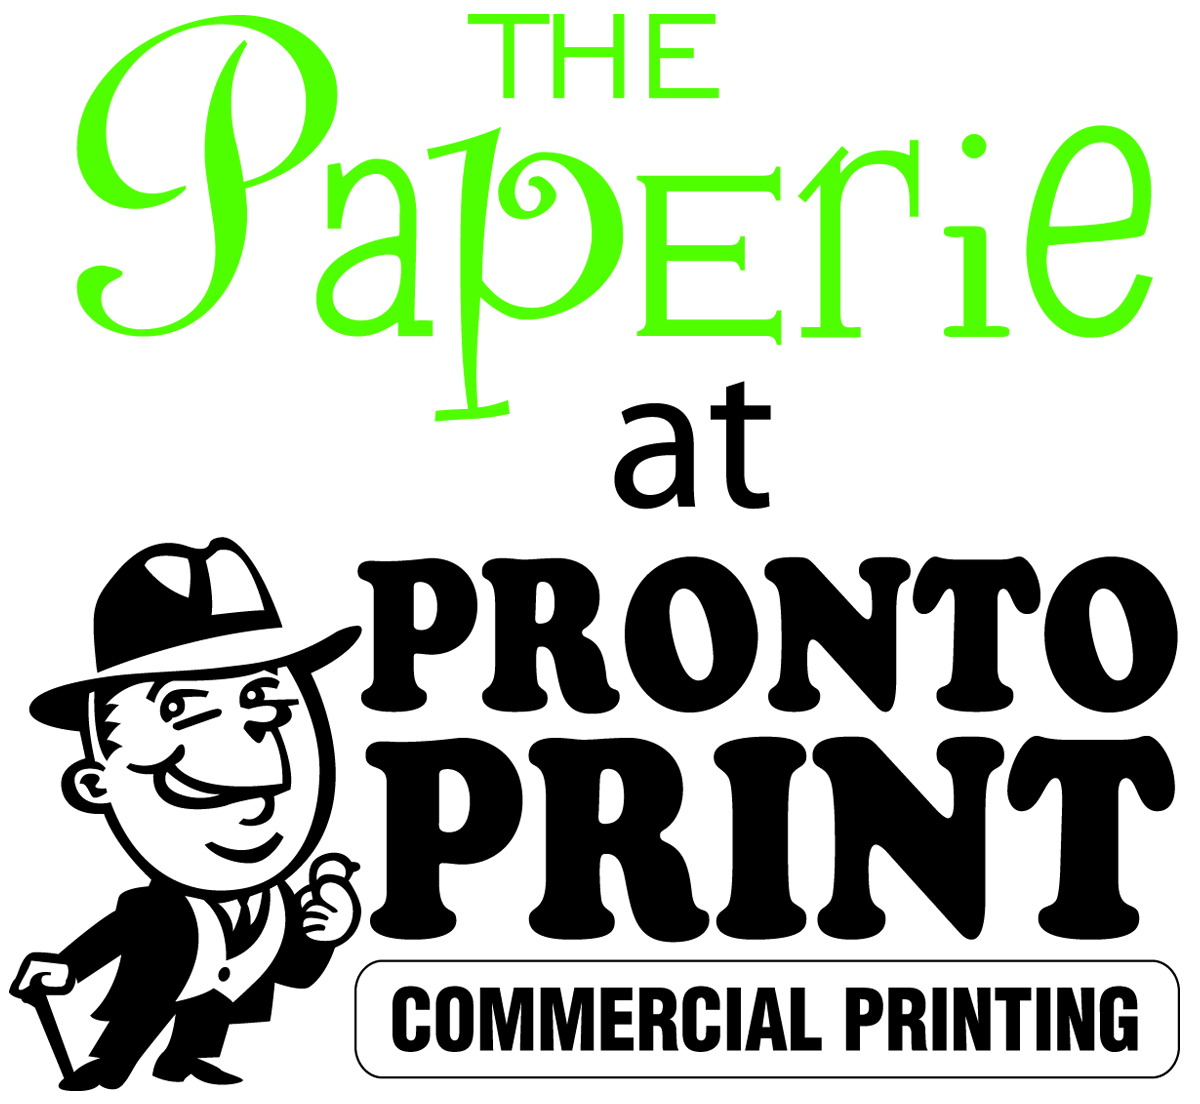 Paperie-Pronto Print